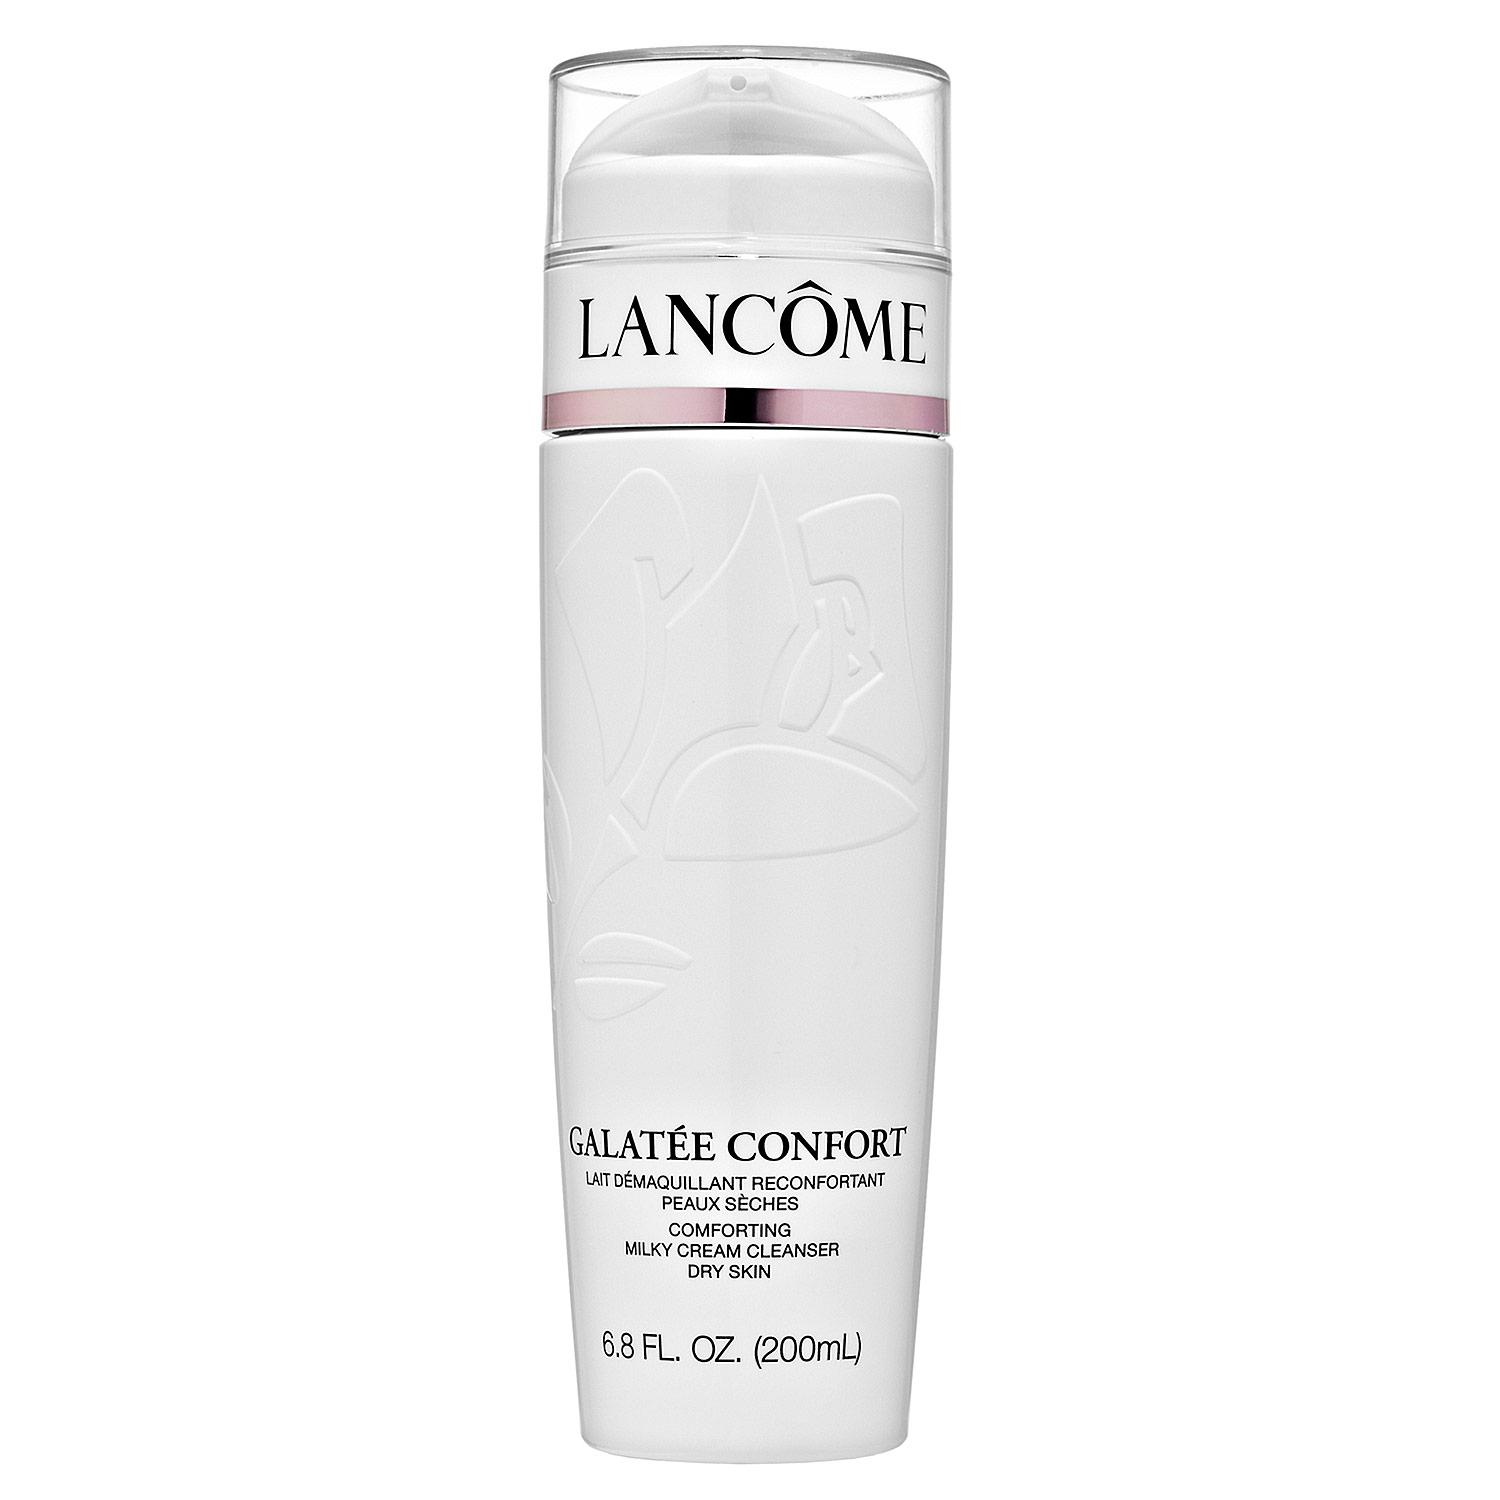 GALATÉE CONFORT - Comforting Milky Creme Cleanser